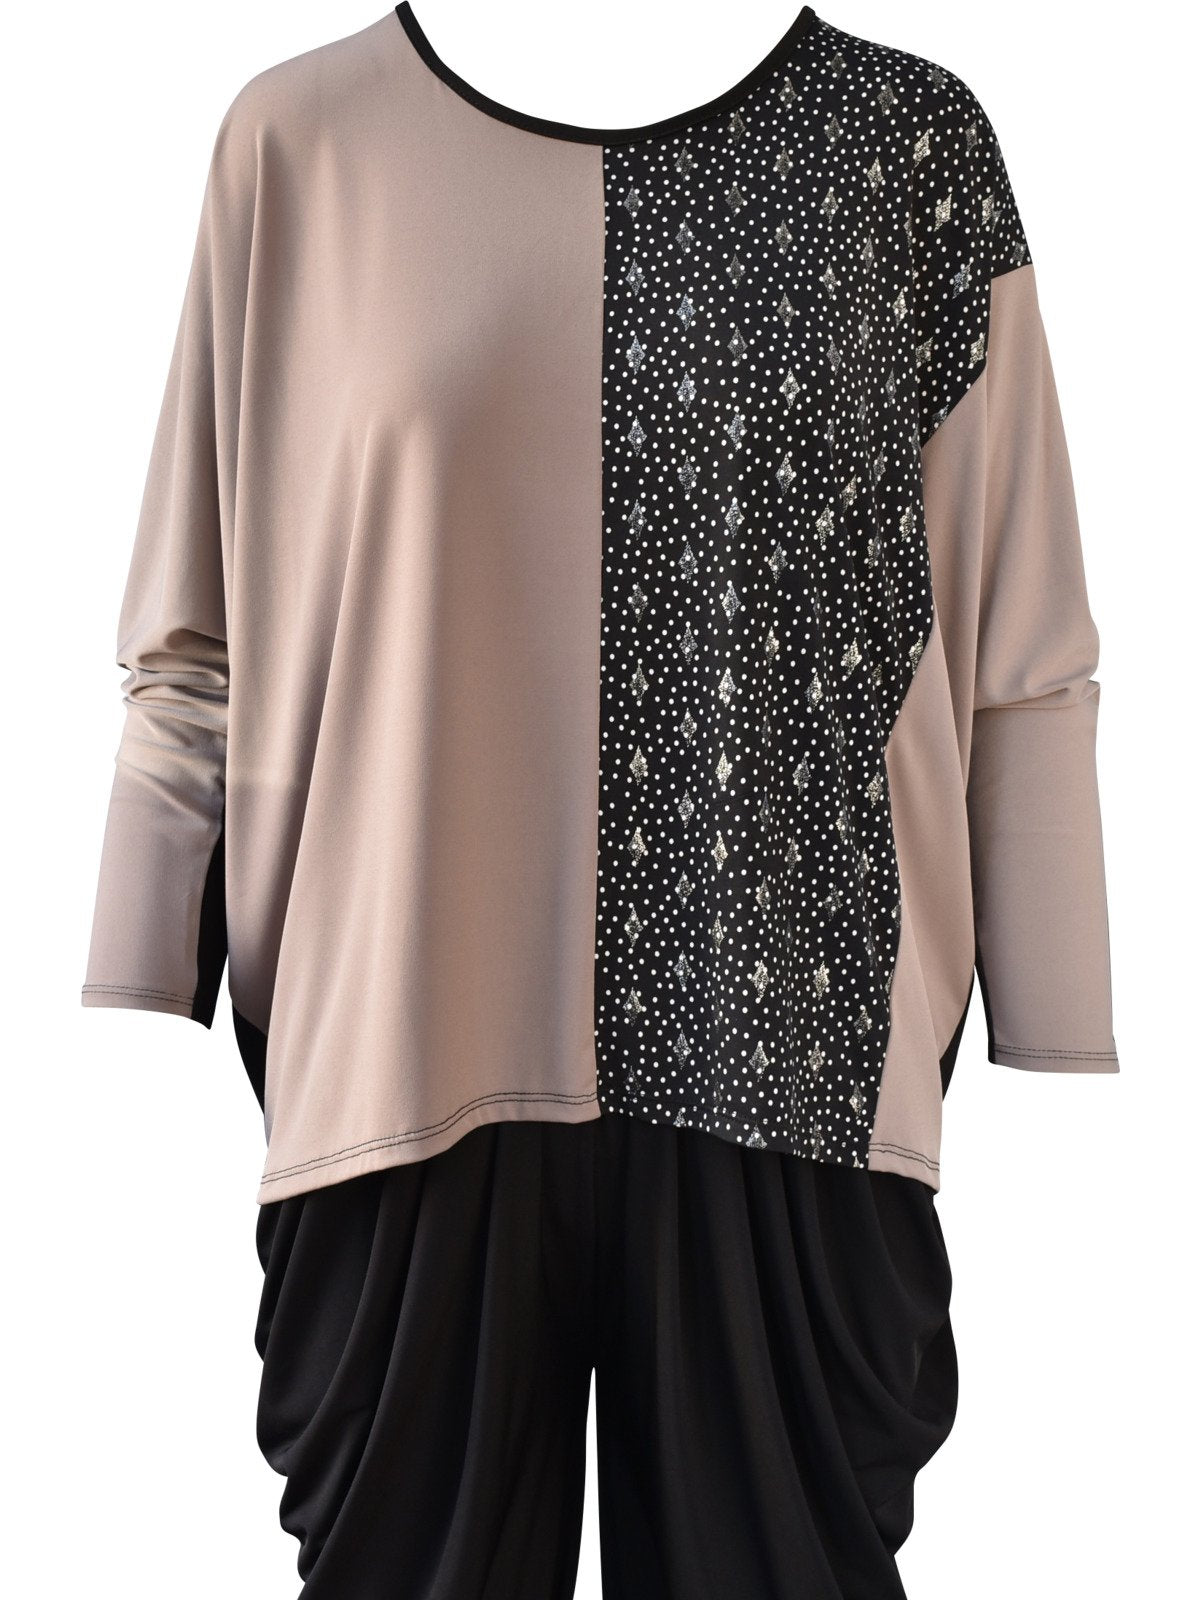 Artimino Diamond Butterfly Top - Statement Boutique